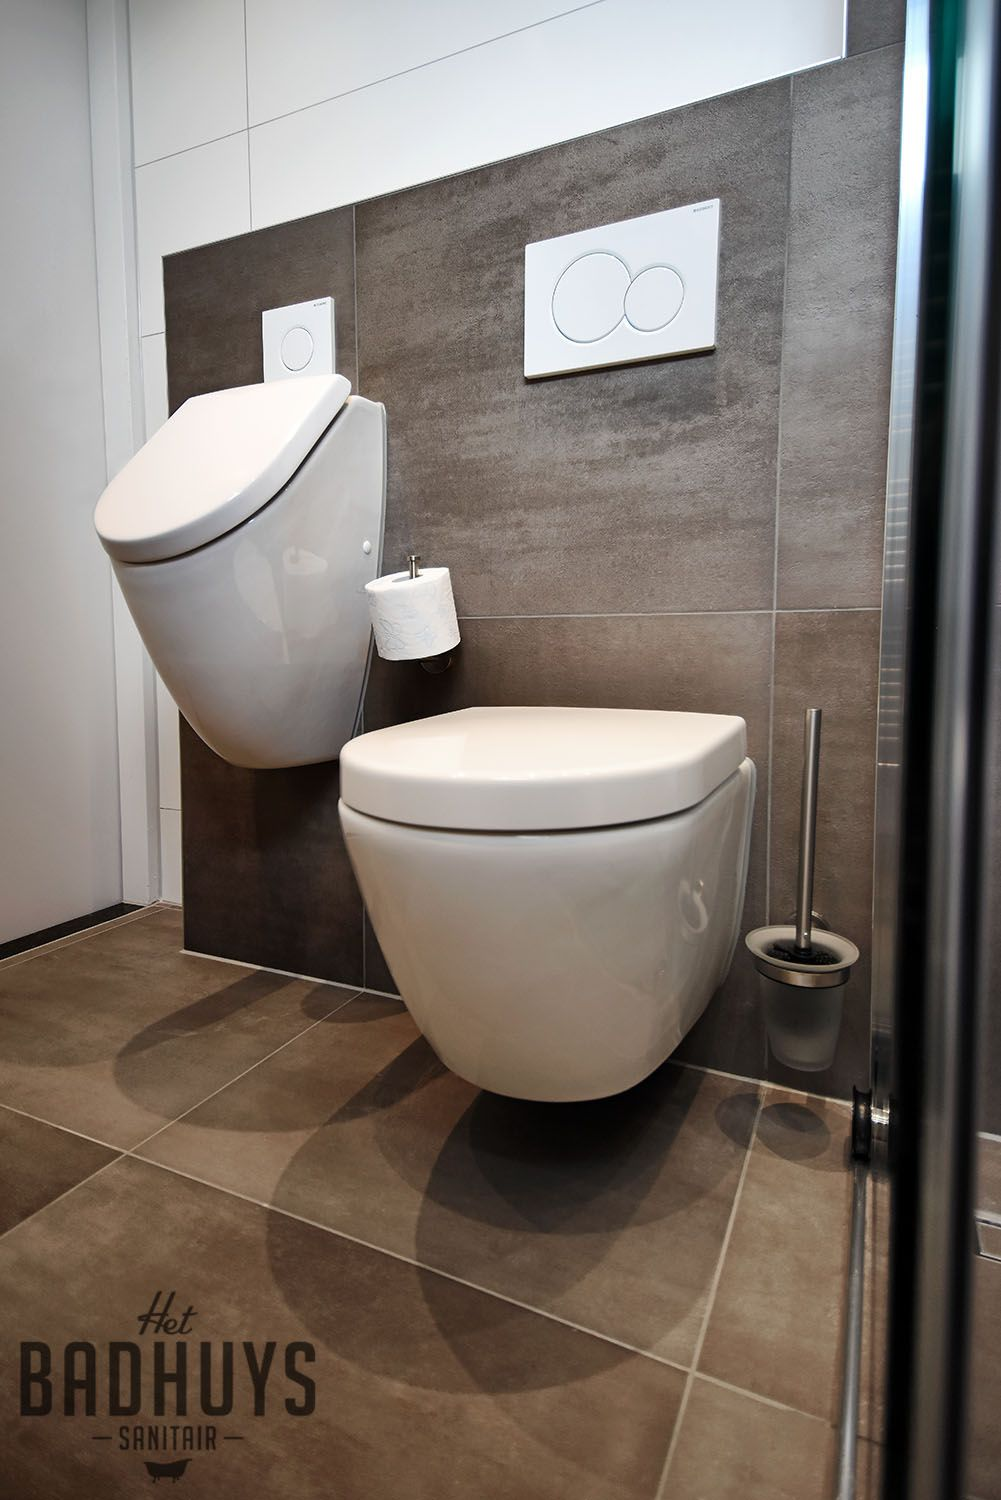 Wall Hung Toilet And Urinal And I D Also Place A Bidet And Bidet Shower Spray Next To Toilet On The Wall With Hot And C Met Afbeeldingen Badkamer Kleine Badkamer Toilet